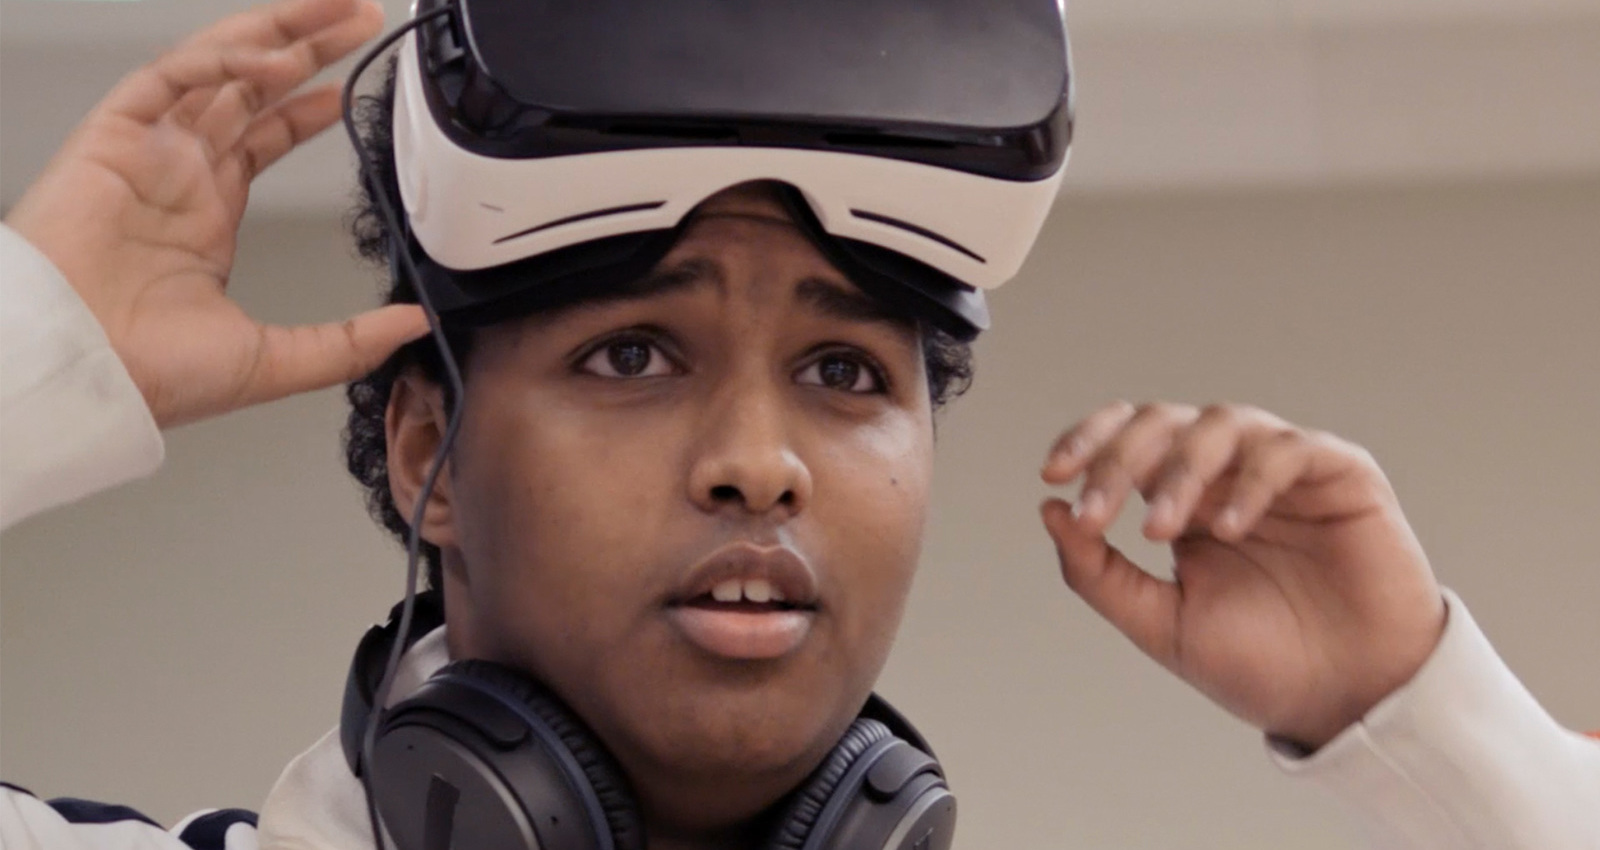 LET US BULLY YOU - IN VIRTUAL REALITY